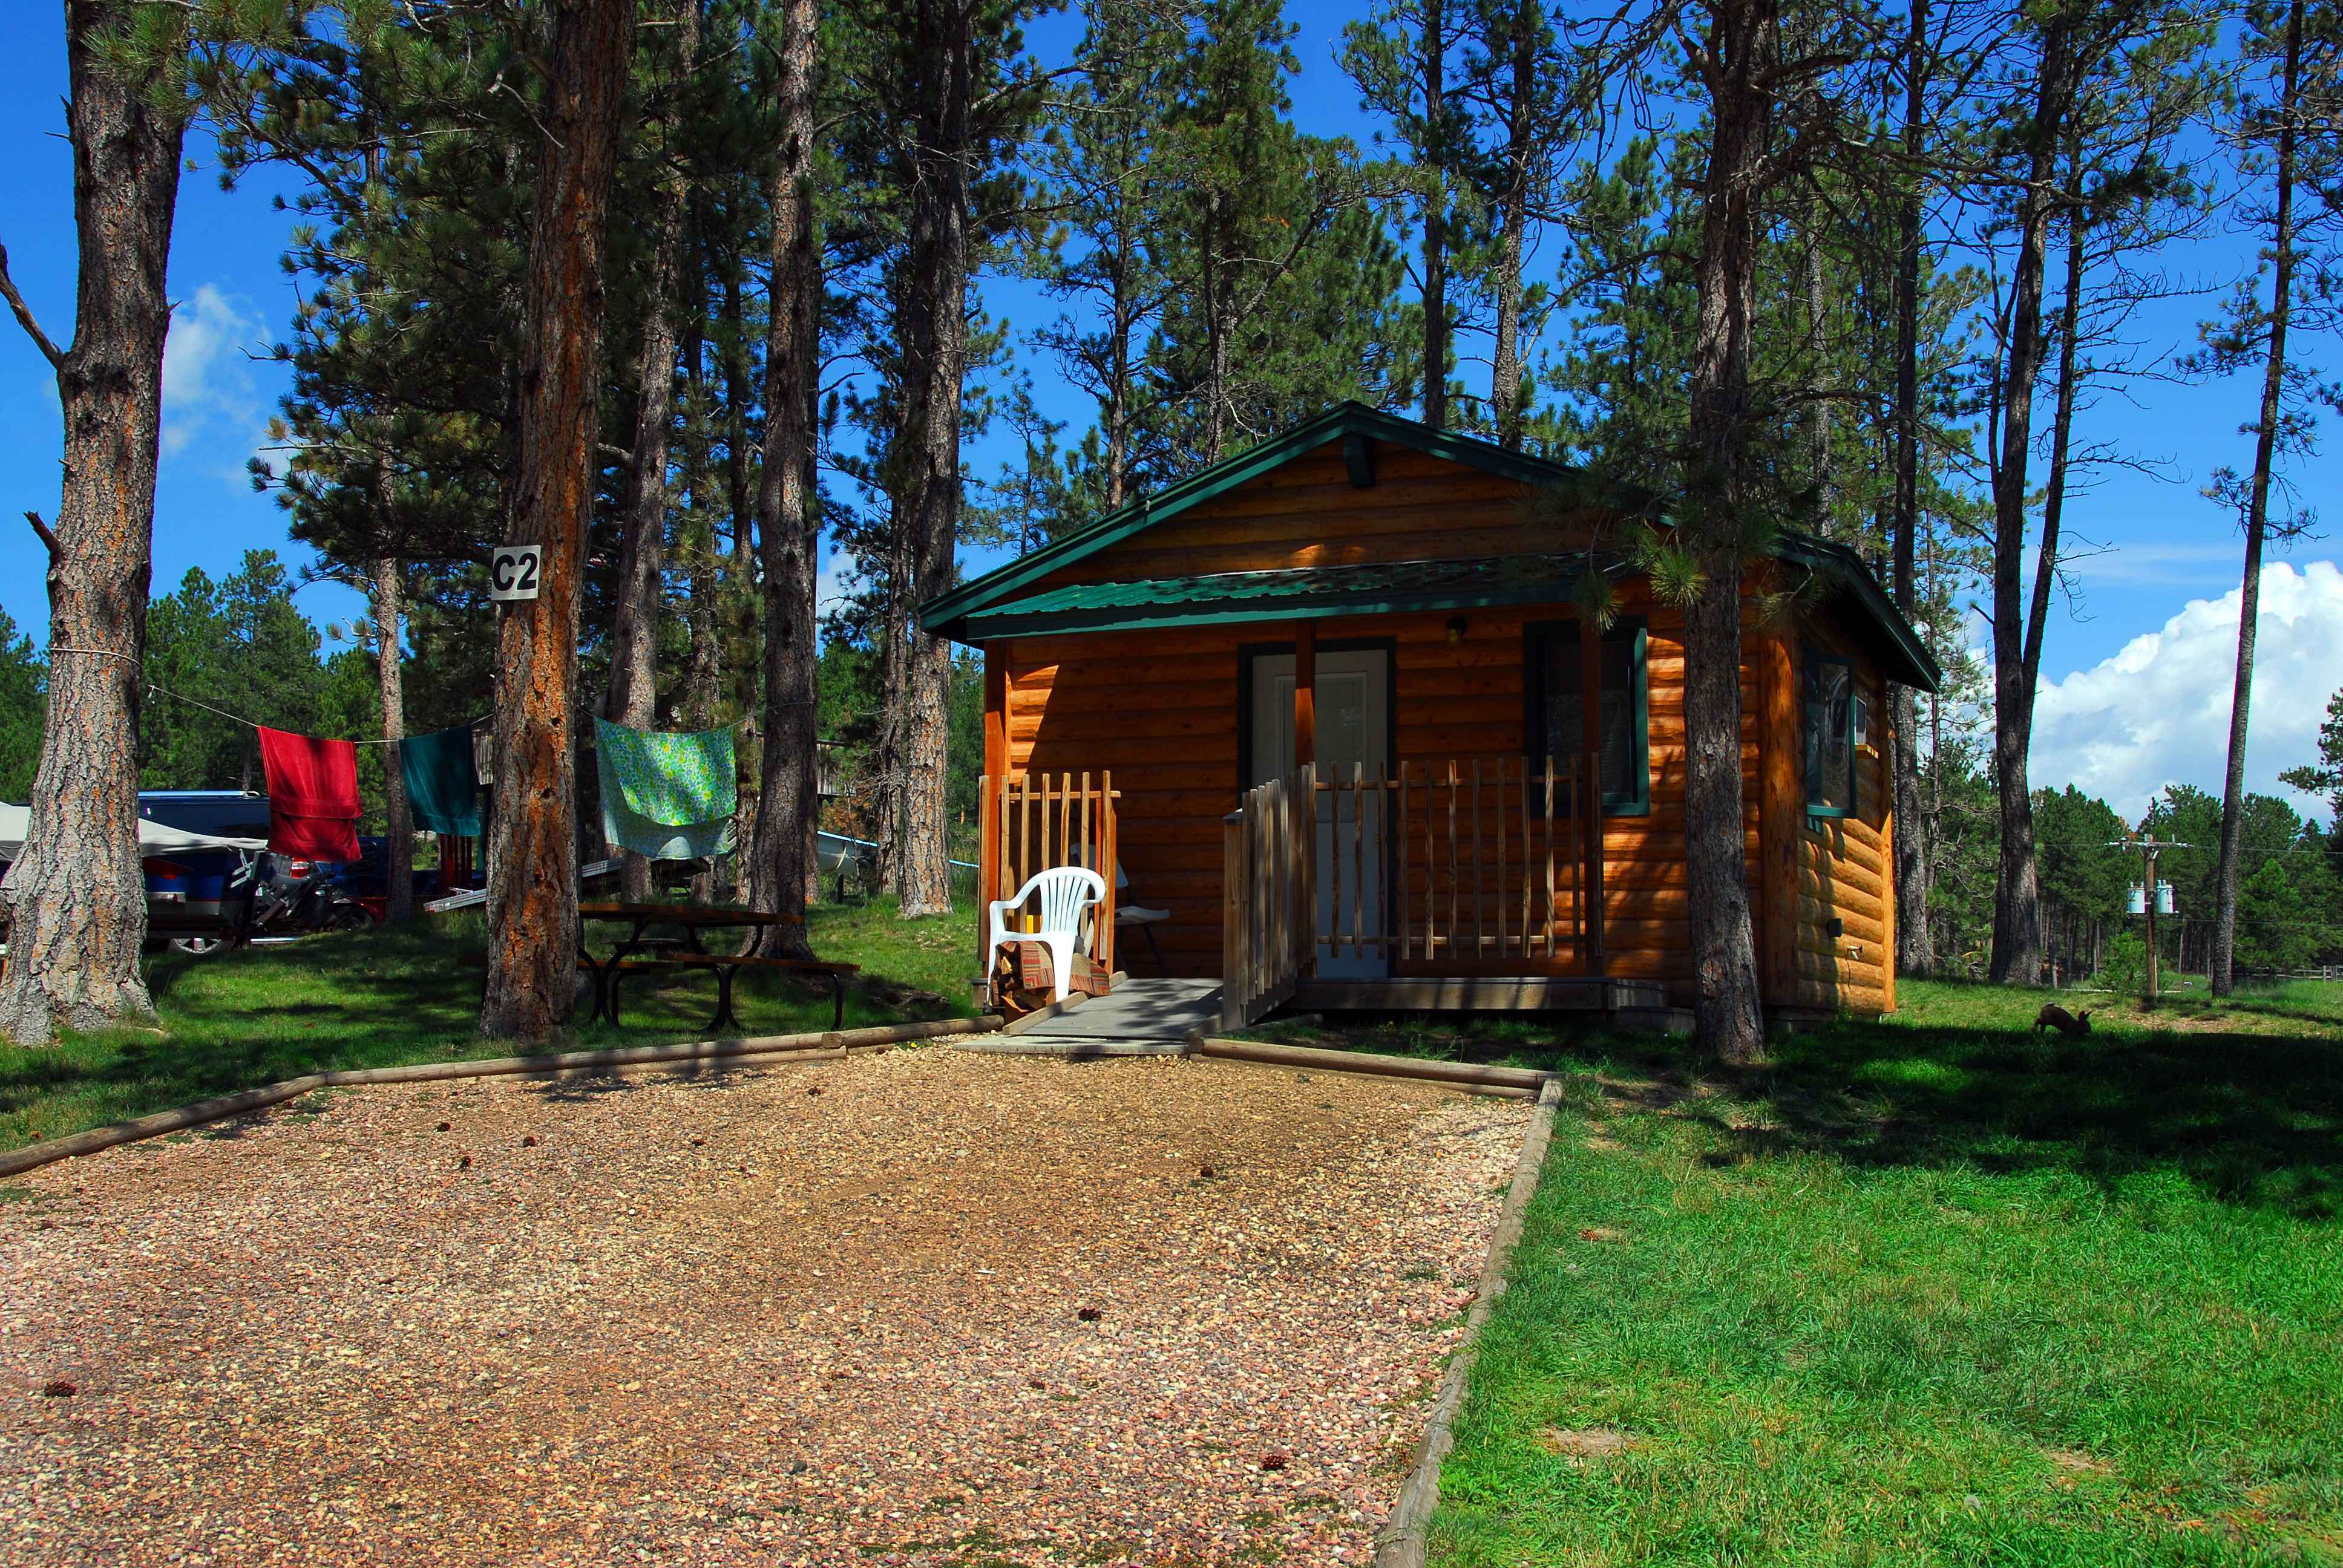 Beaver lake campground in custer sd 57730 for Cabins near custer sd